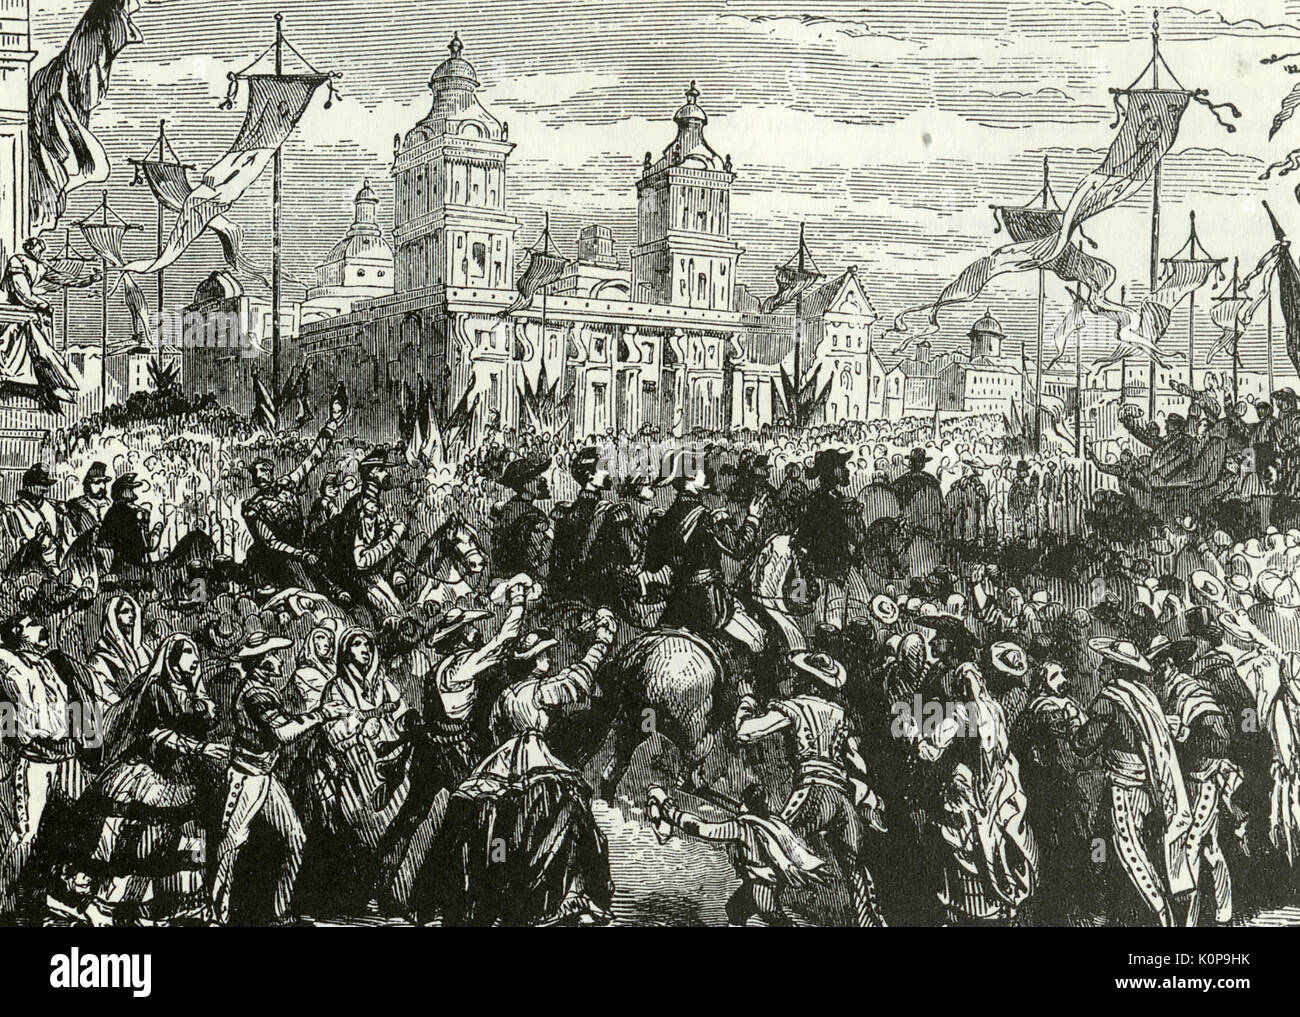 MEXICAN WAR OF THE FRENCH INTERVENTION. French soldiers enter Mexico City 1864 - Stock Image